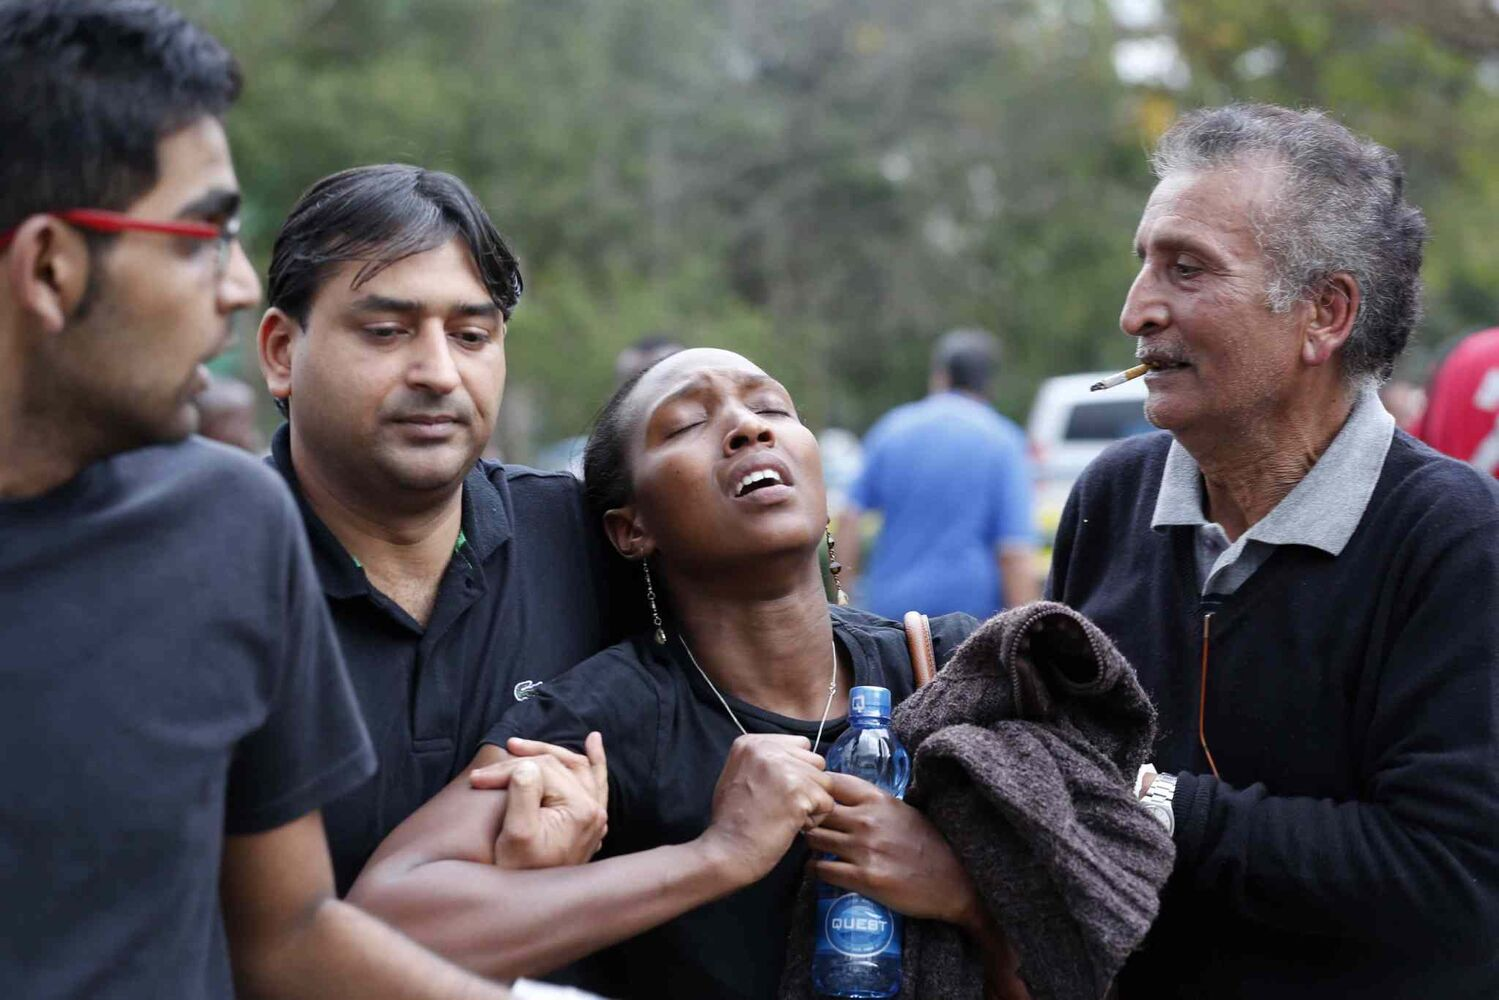 A woman is rescued from the Westgate Mall in Nairobi, Kenya on Saturday after a gun battle inside the shopping centre left at least 39 people dead after terrorists attacked one of the city's most exclusive malls. (Tribune Media MCT)